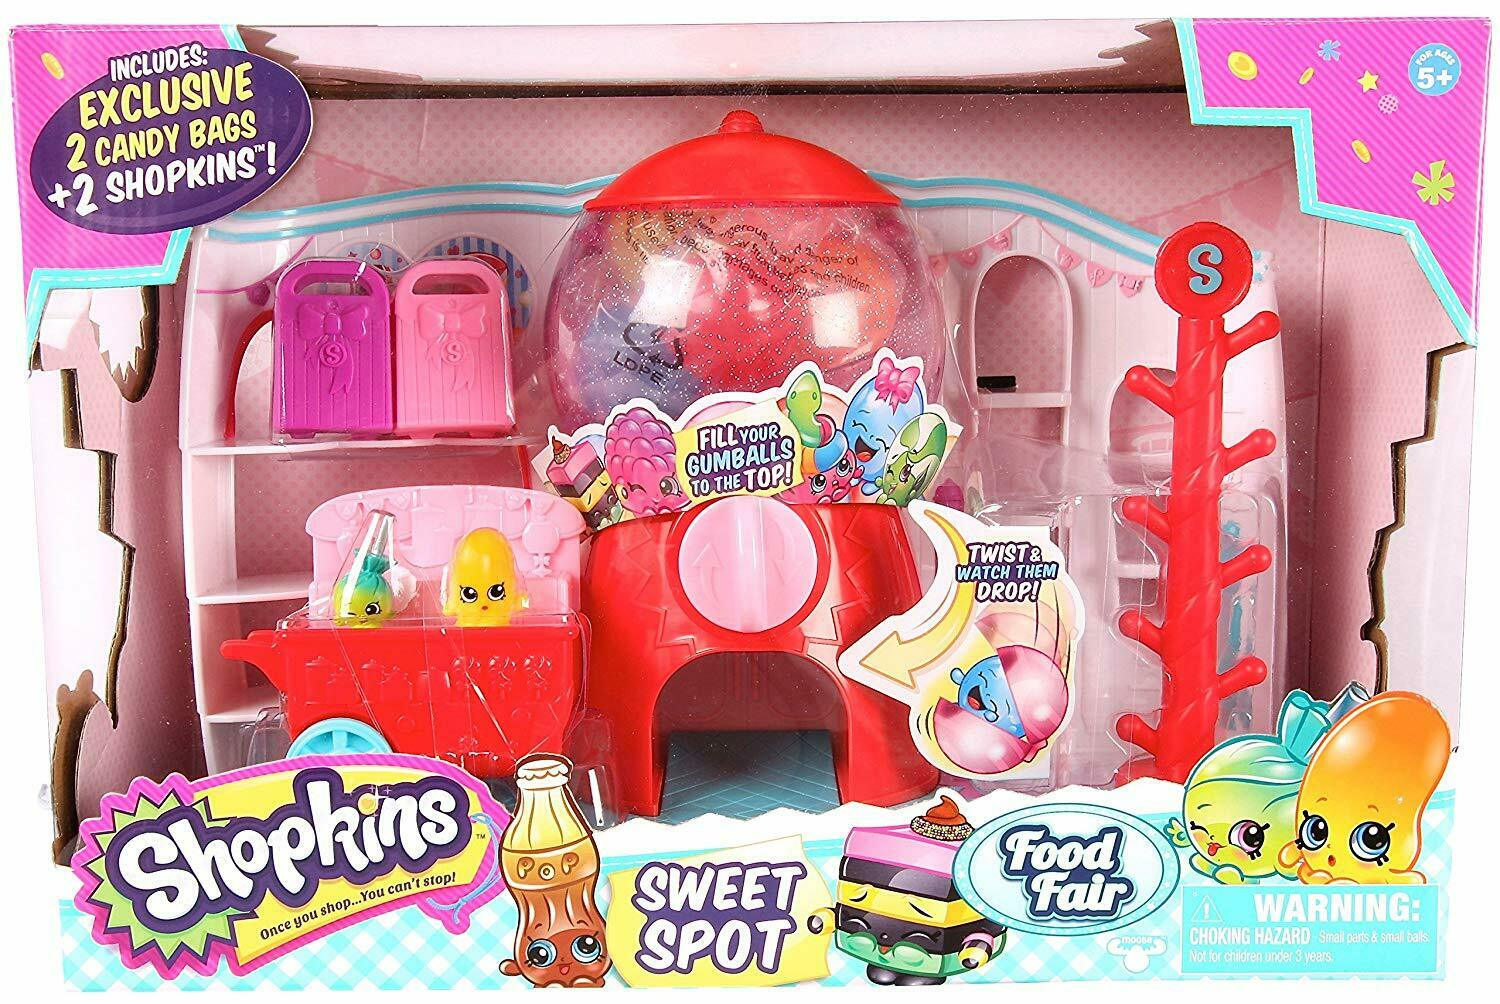 Shopkins Sweet Spot Playset Ages 5+ Toy Play Food Fair Candy Cart Lollipop Ride